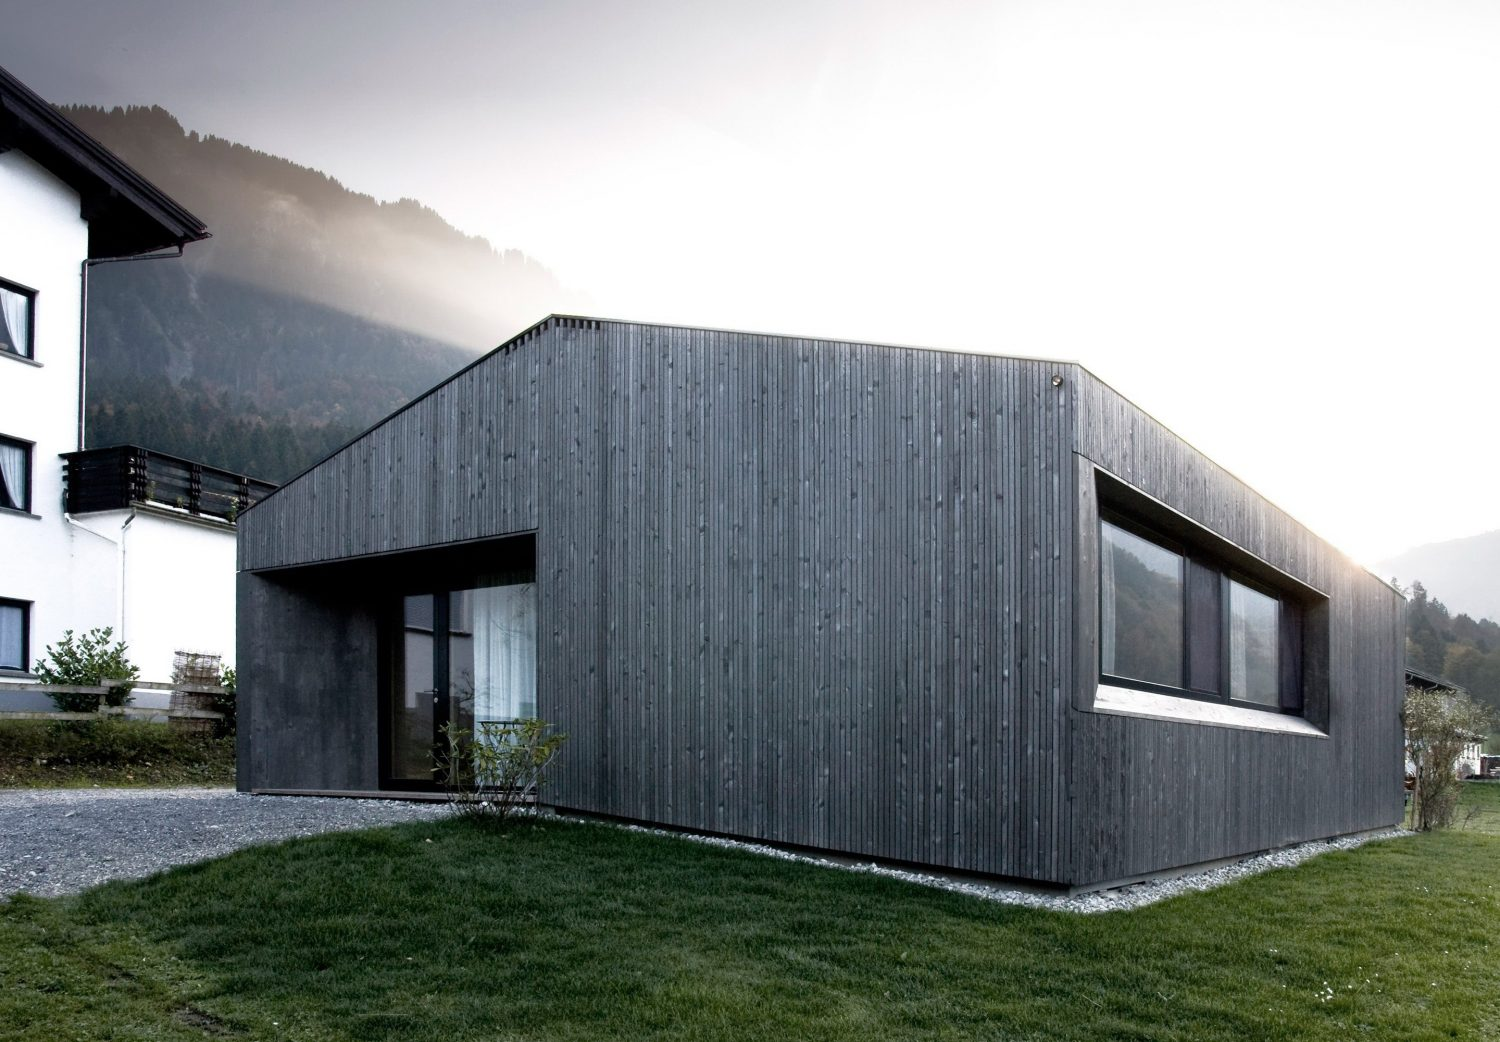 House for Gudrun by Innauer-Matt Architekten